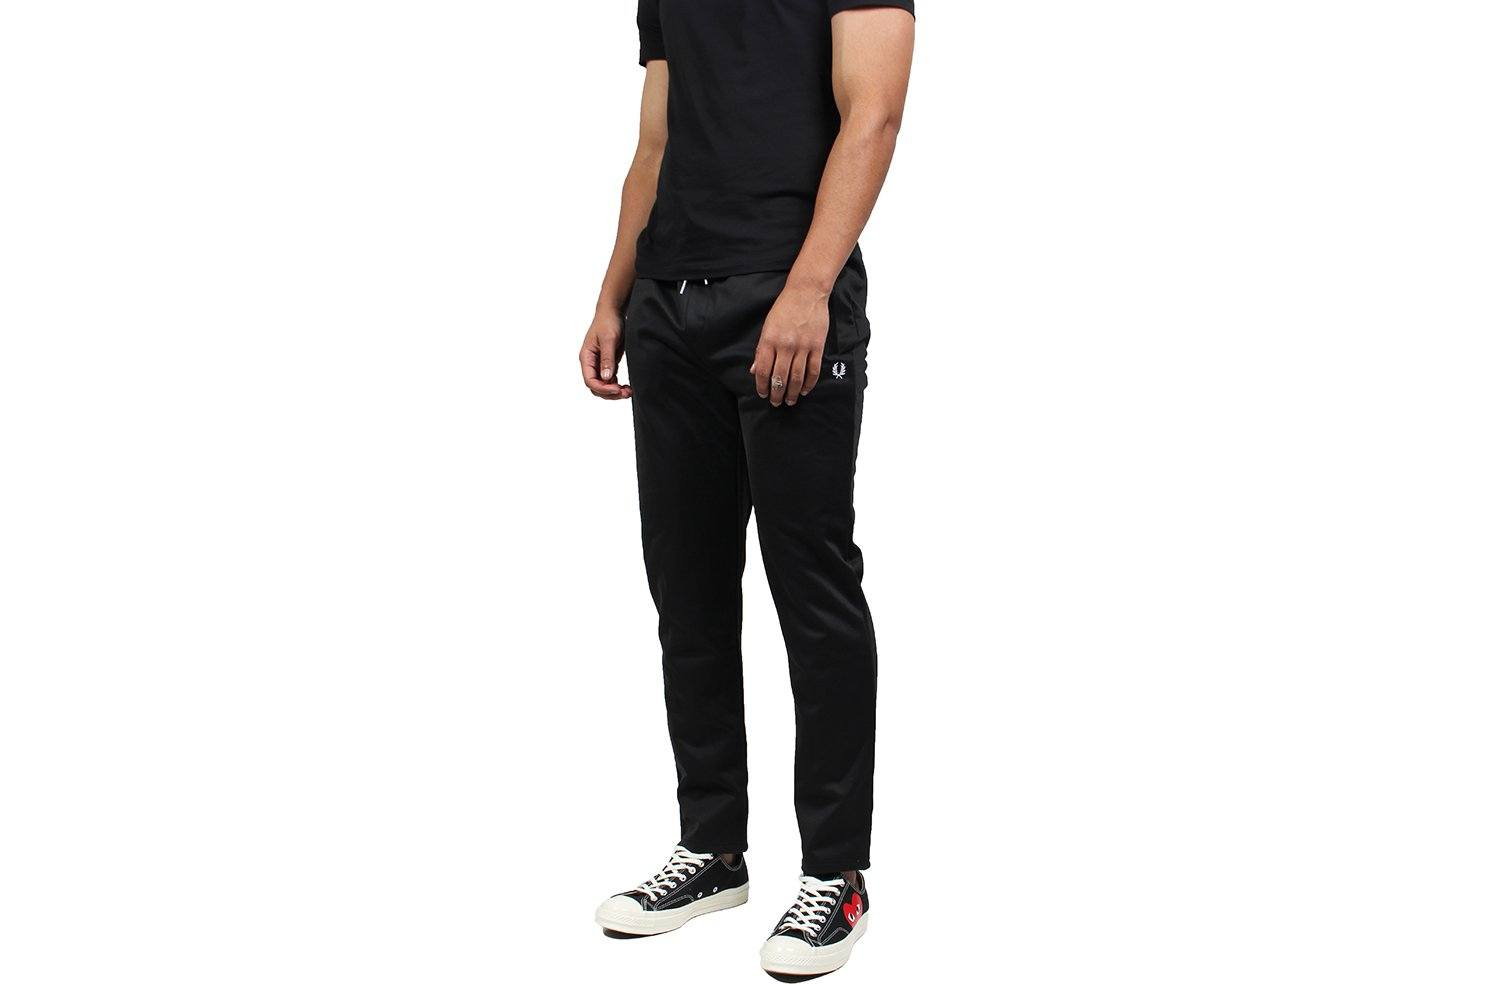 EMBROIDERED TRACK PANT - T5500 MENS SOFTGOODS FRED PERRY